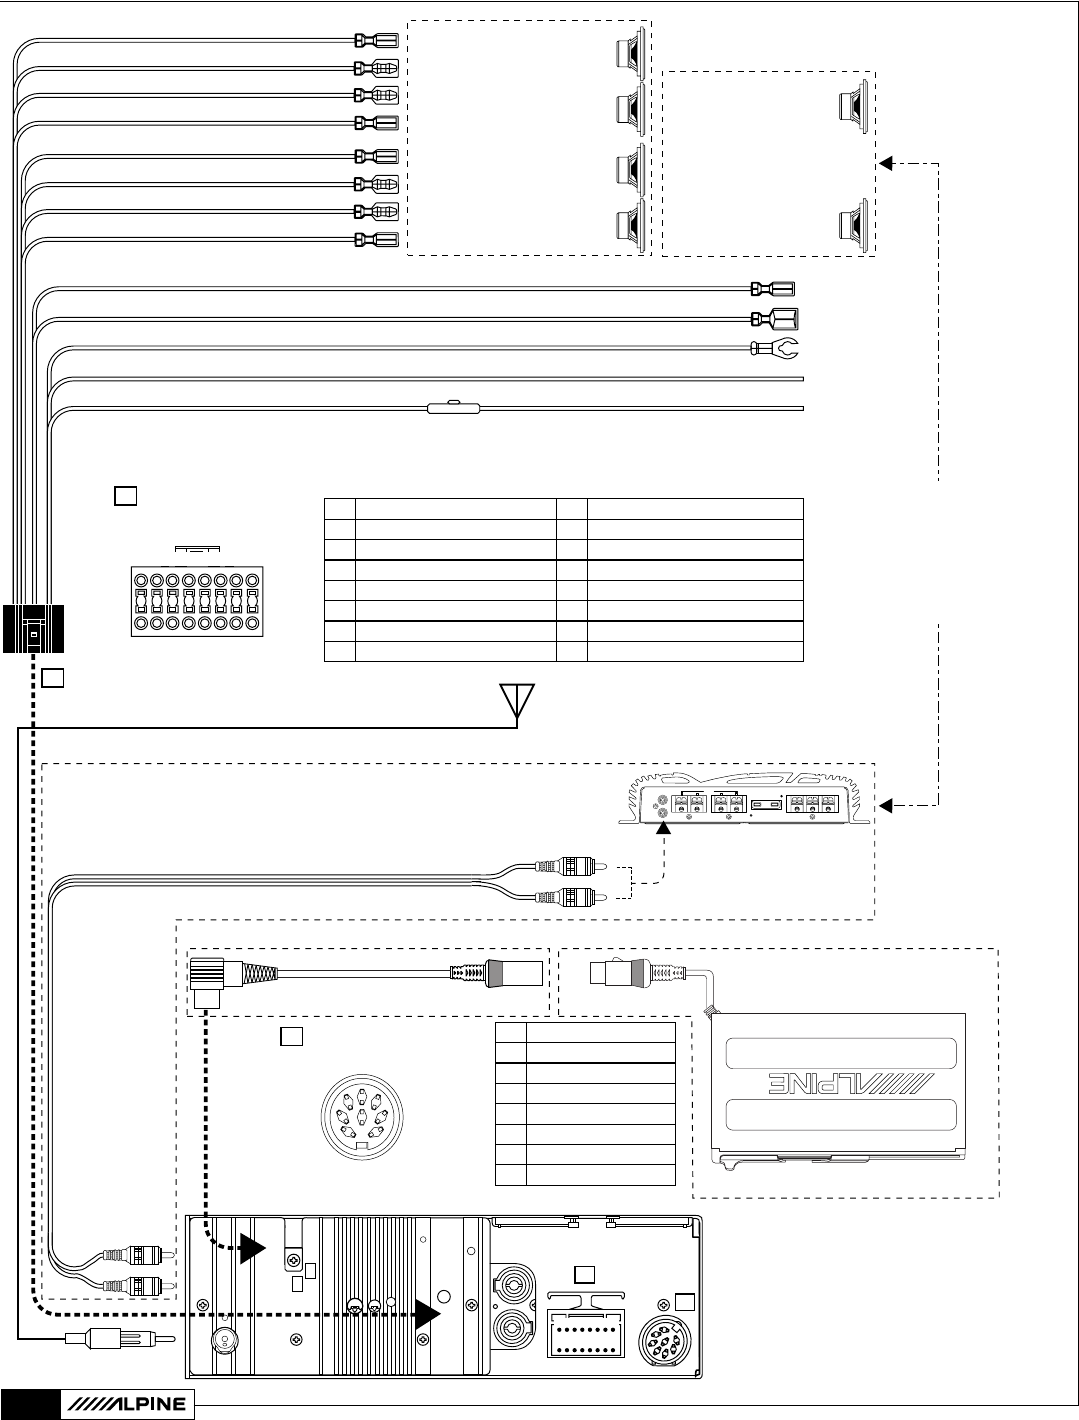 page 2 of alpine car stereo system tdm 7544 user guide rh caraudio manualsonline com alpine auto stereo manual 4 Channel Car Amplifier Installation